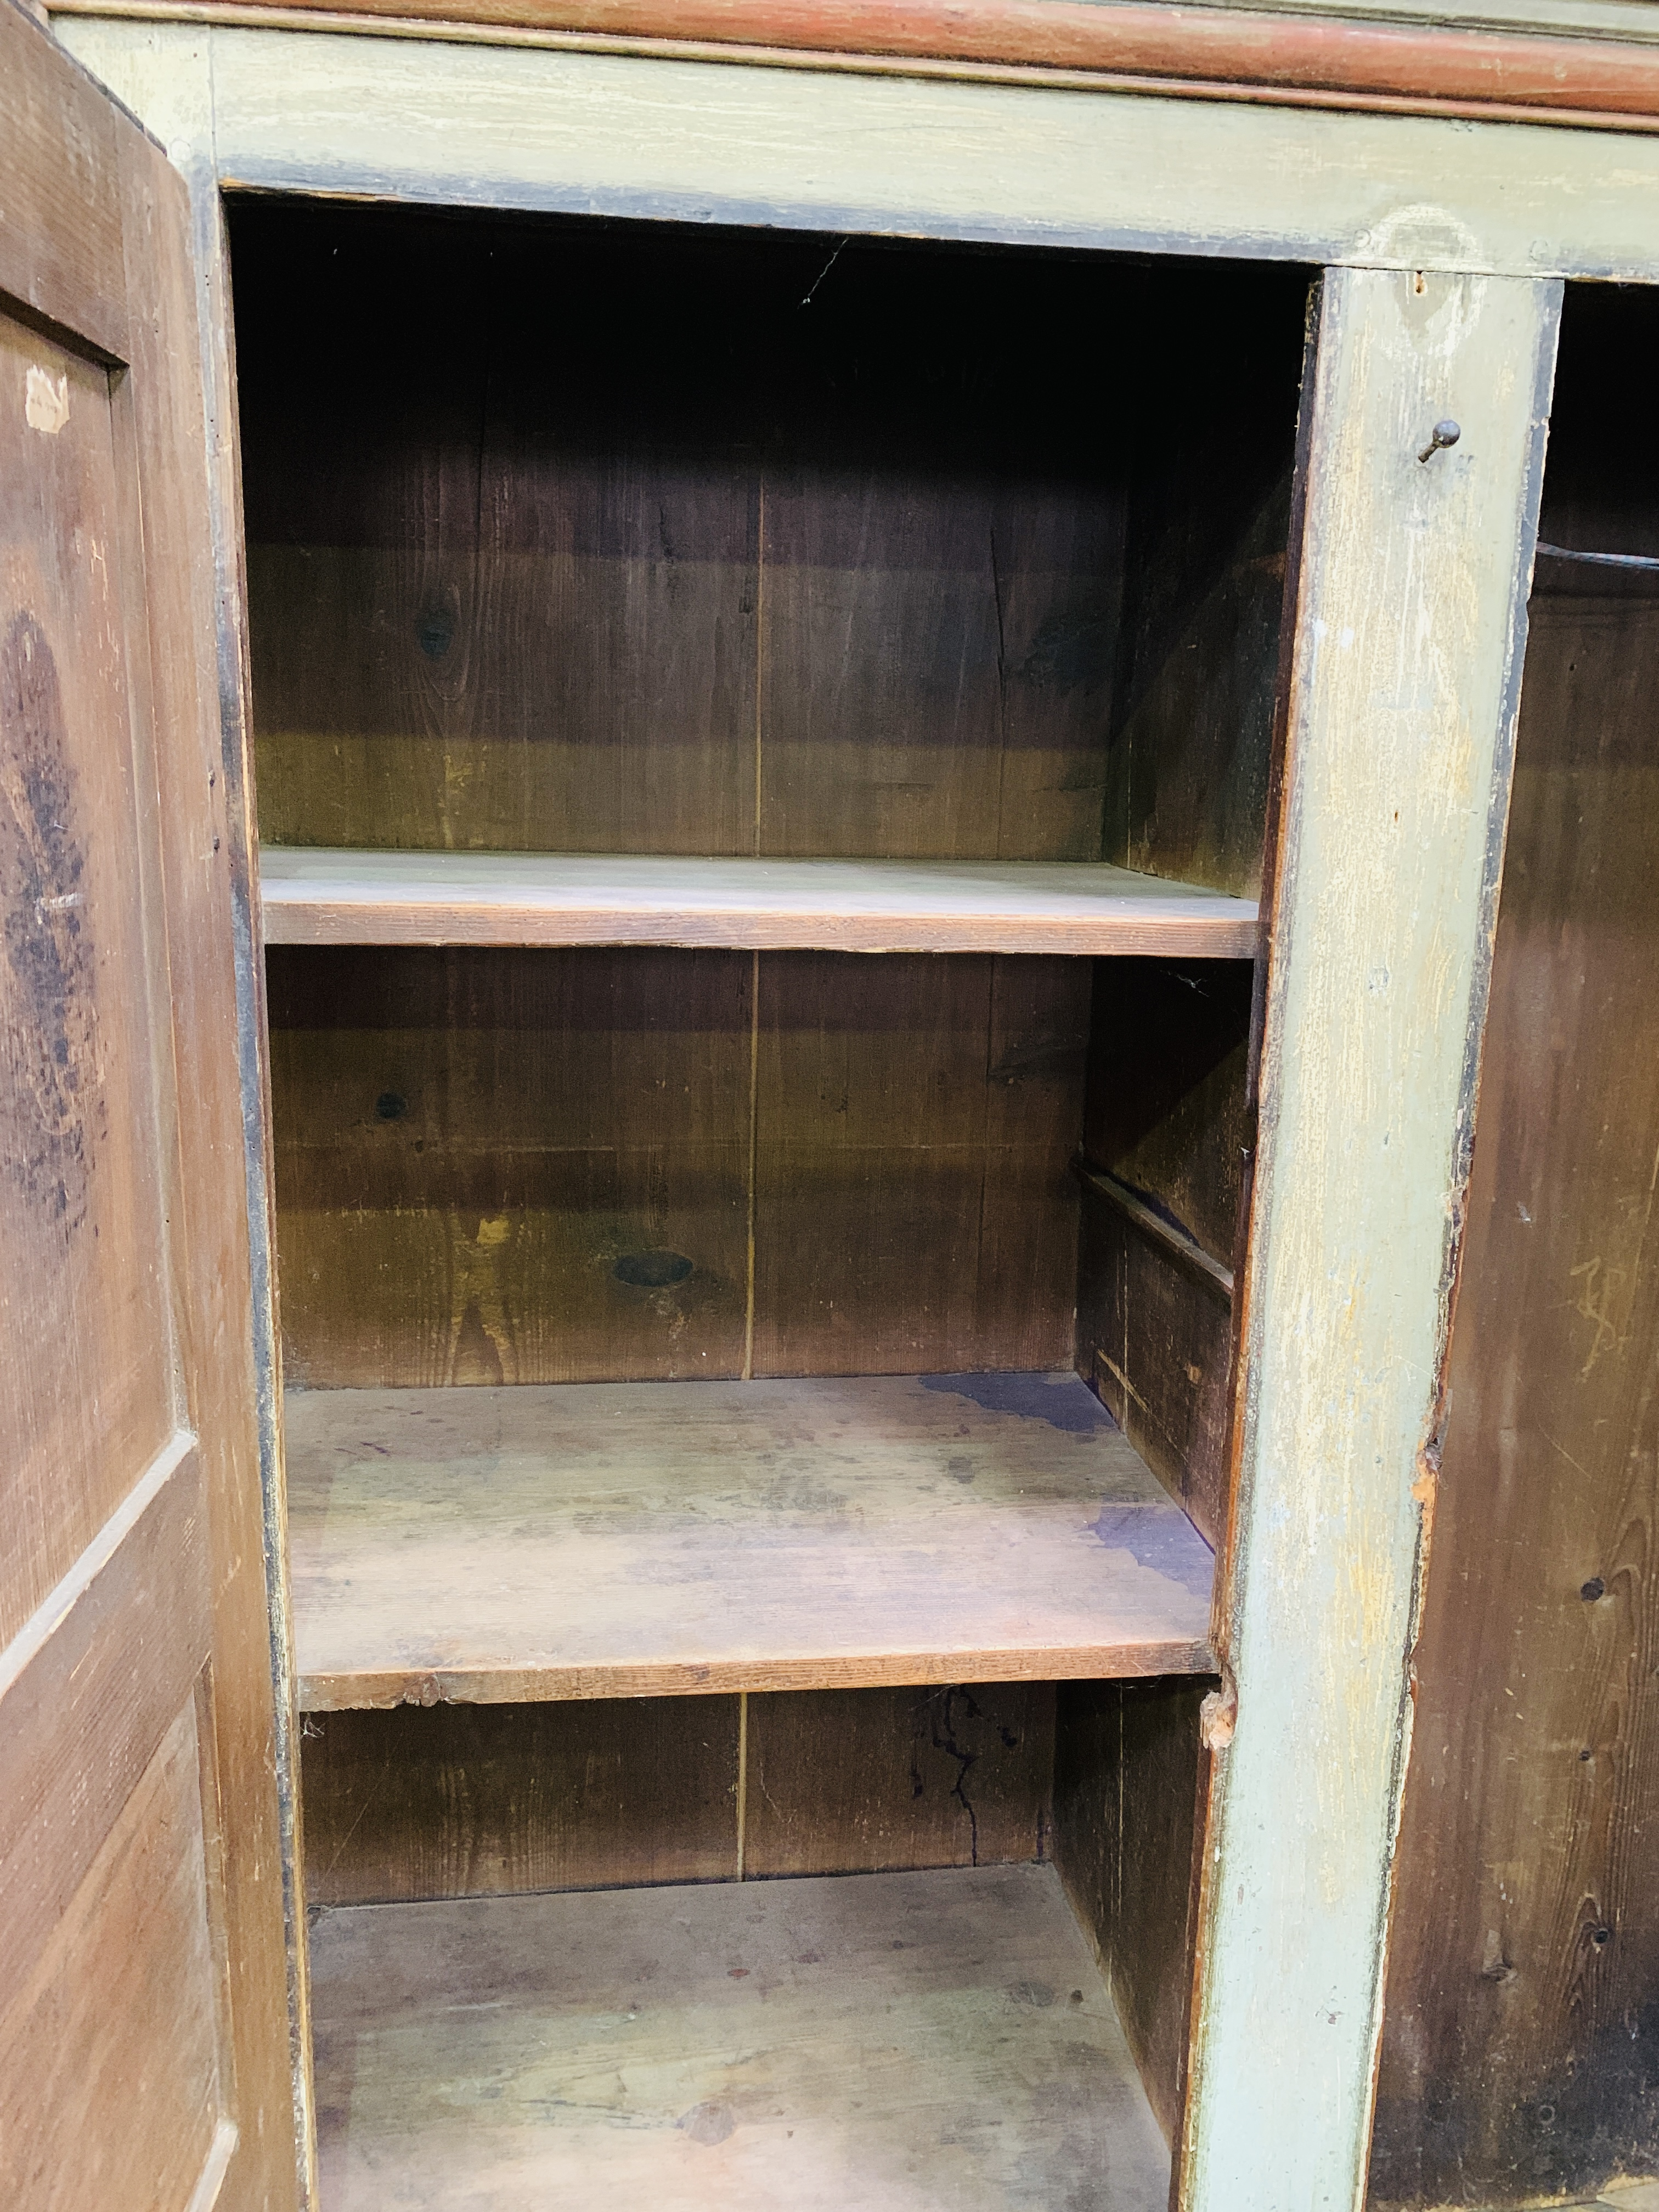 Mid-19th century French painted pine wardrobe - Image 2 of 8